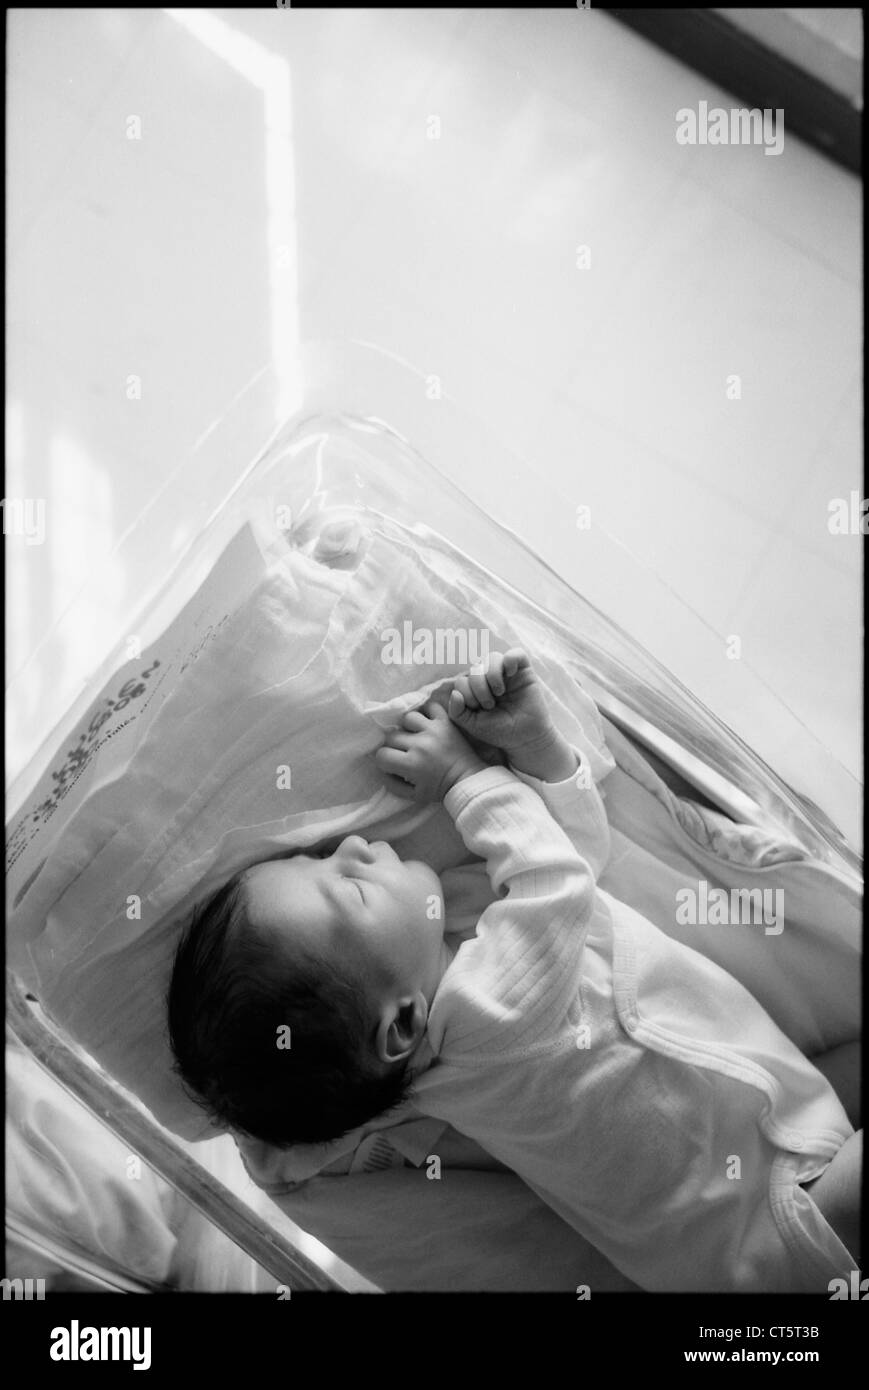 NEWBORN BABY SLEEPING - Stock Image